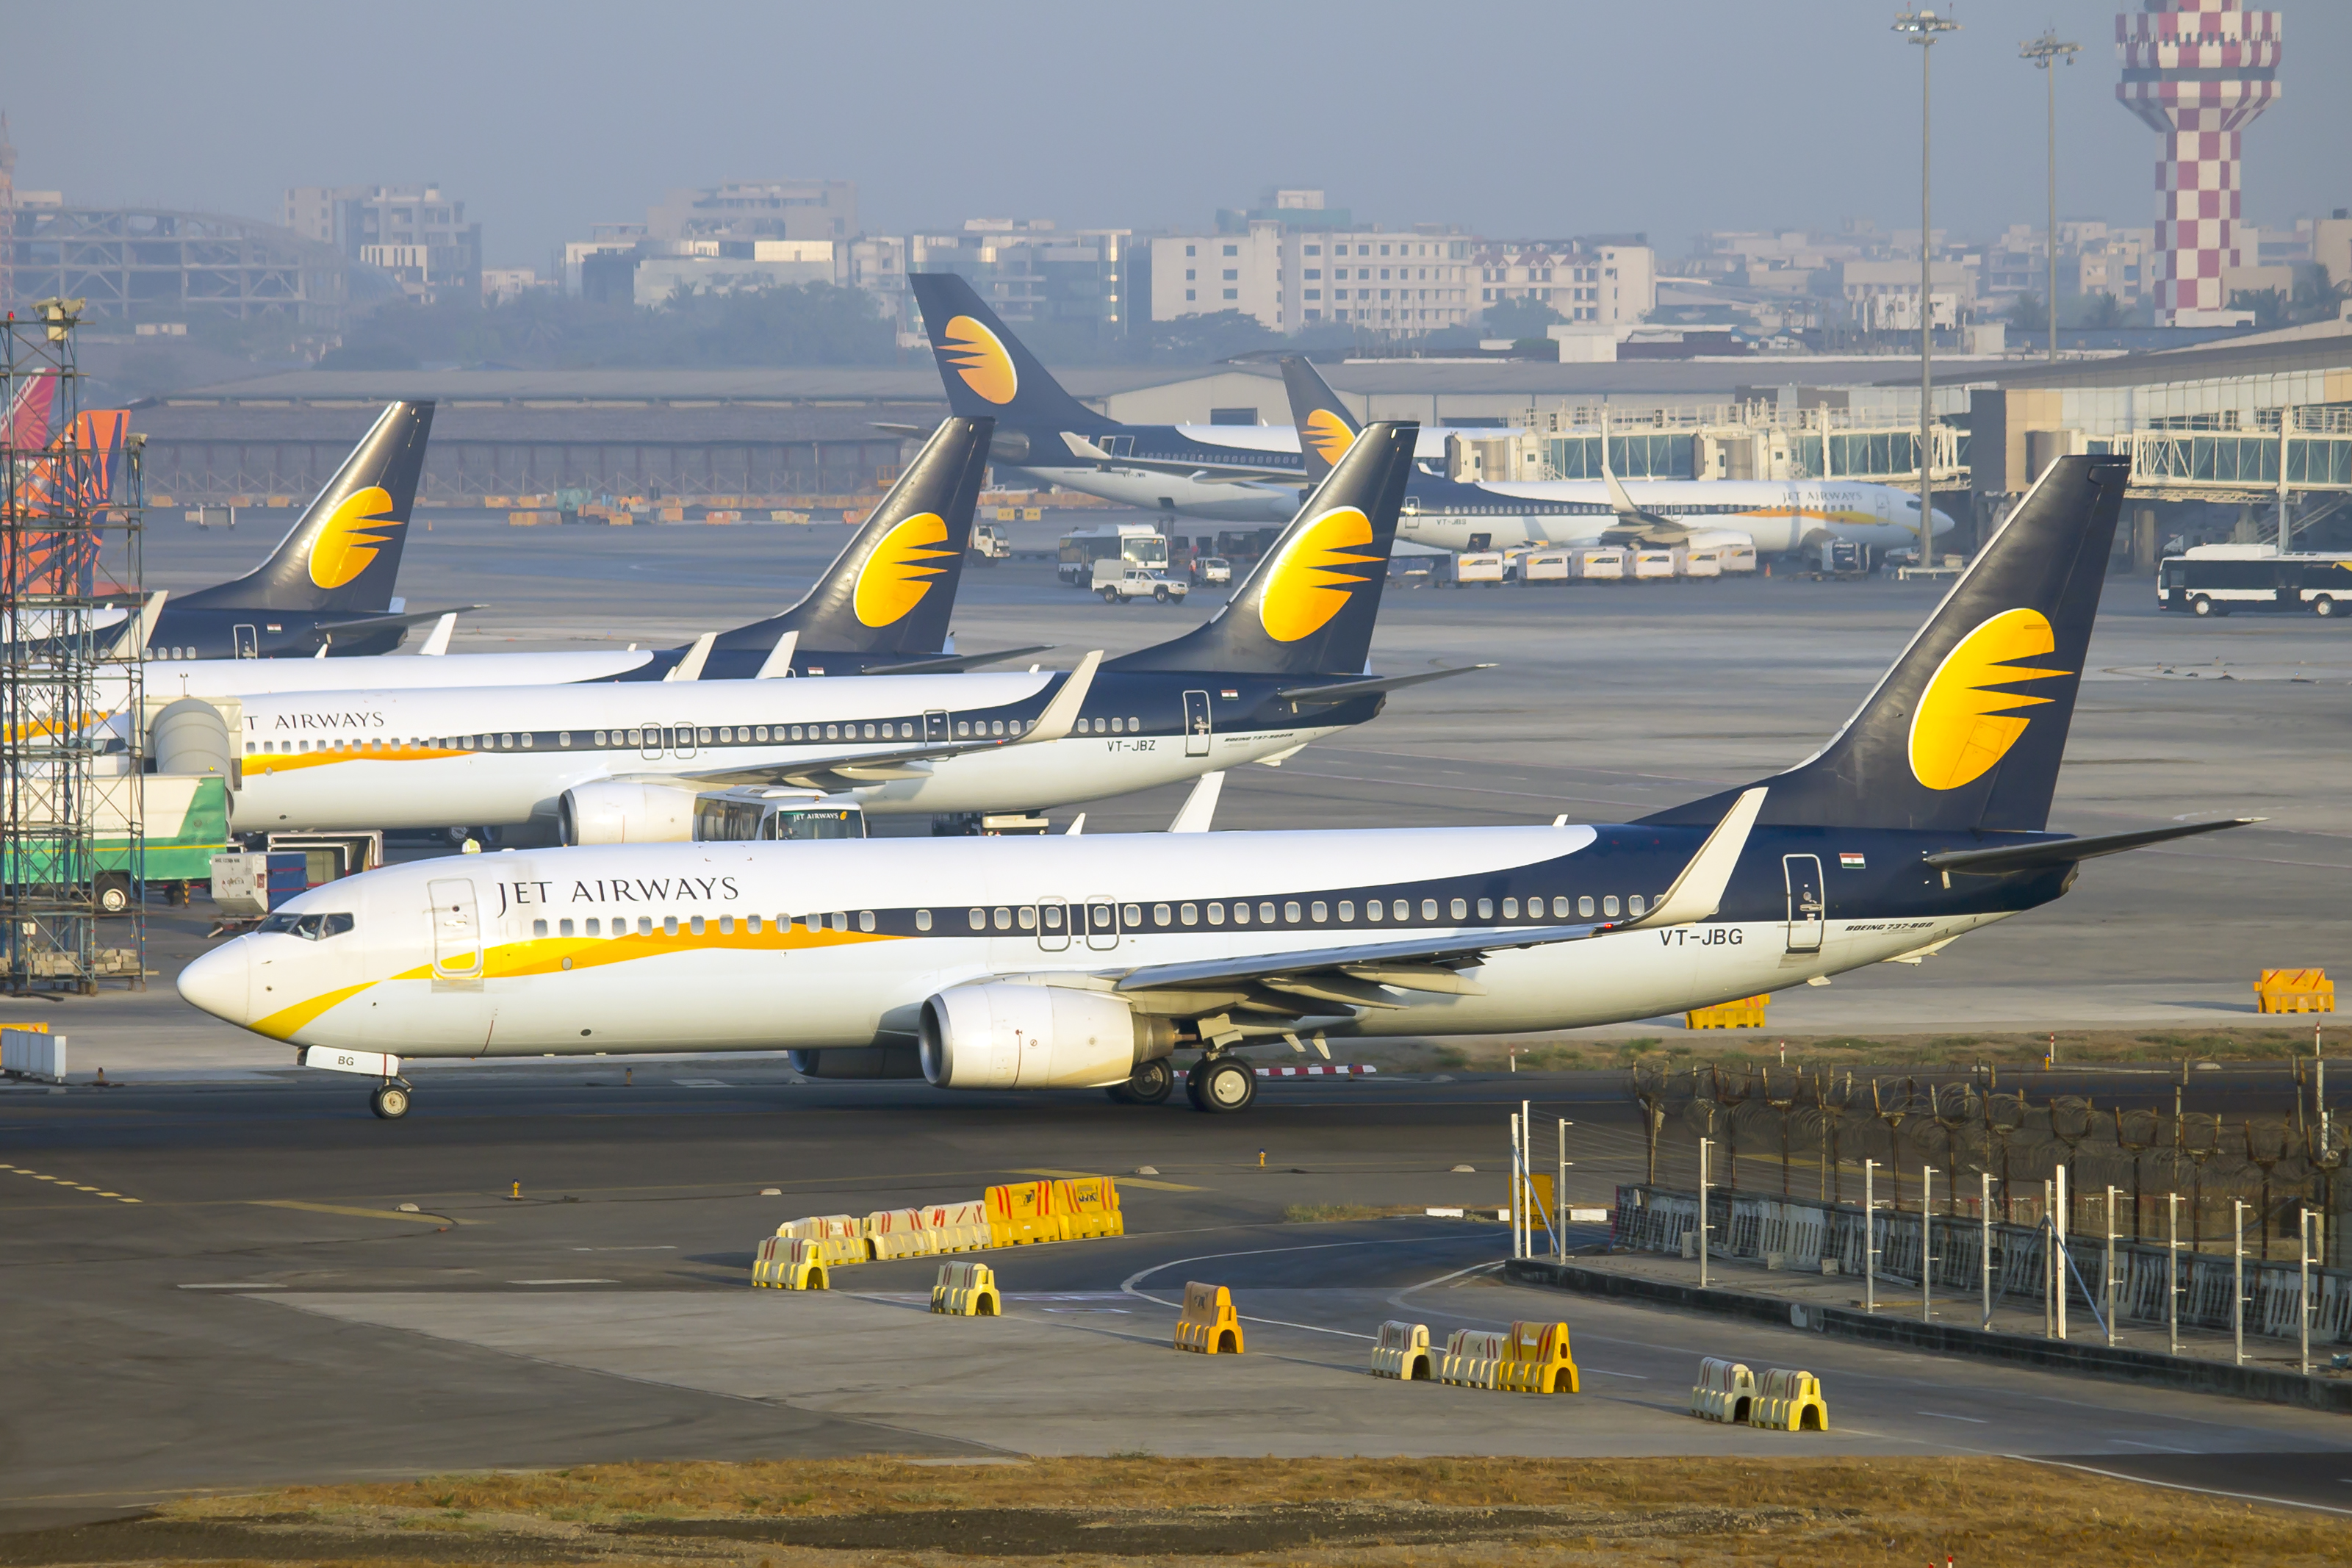 image_of_of_jet_airways_planes_on_runway